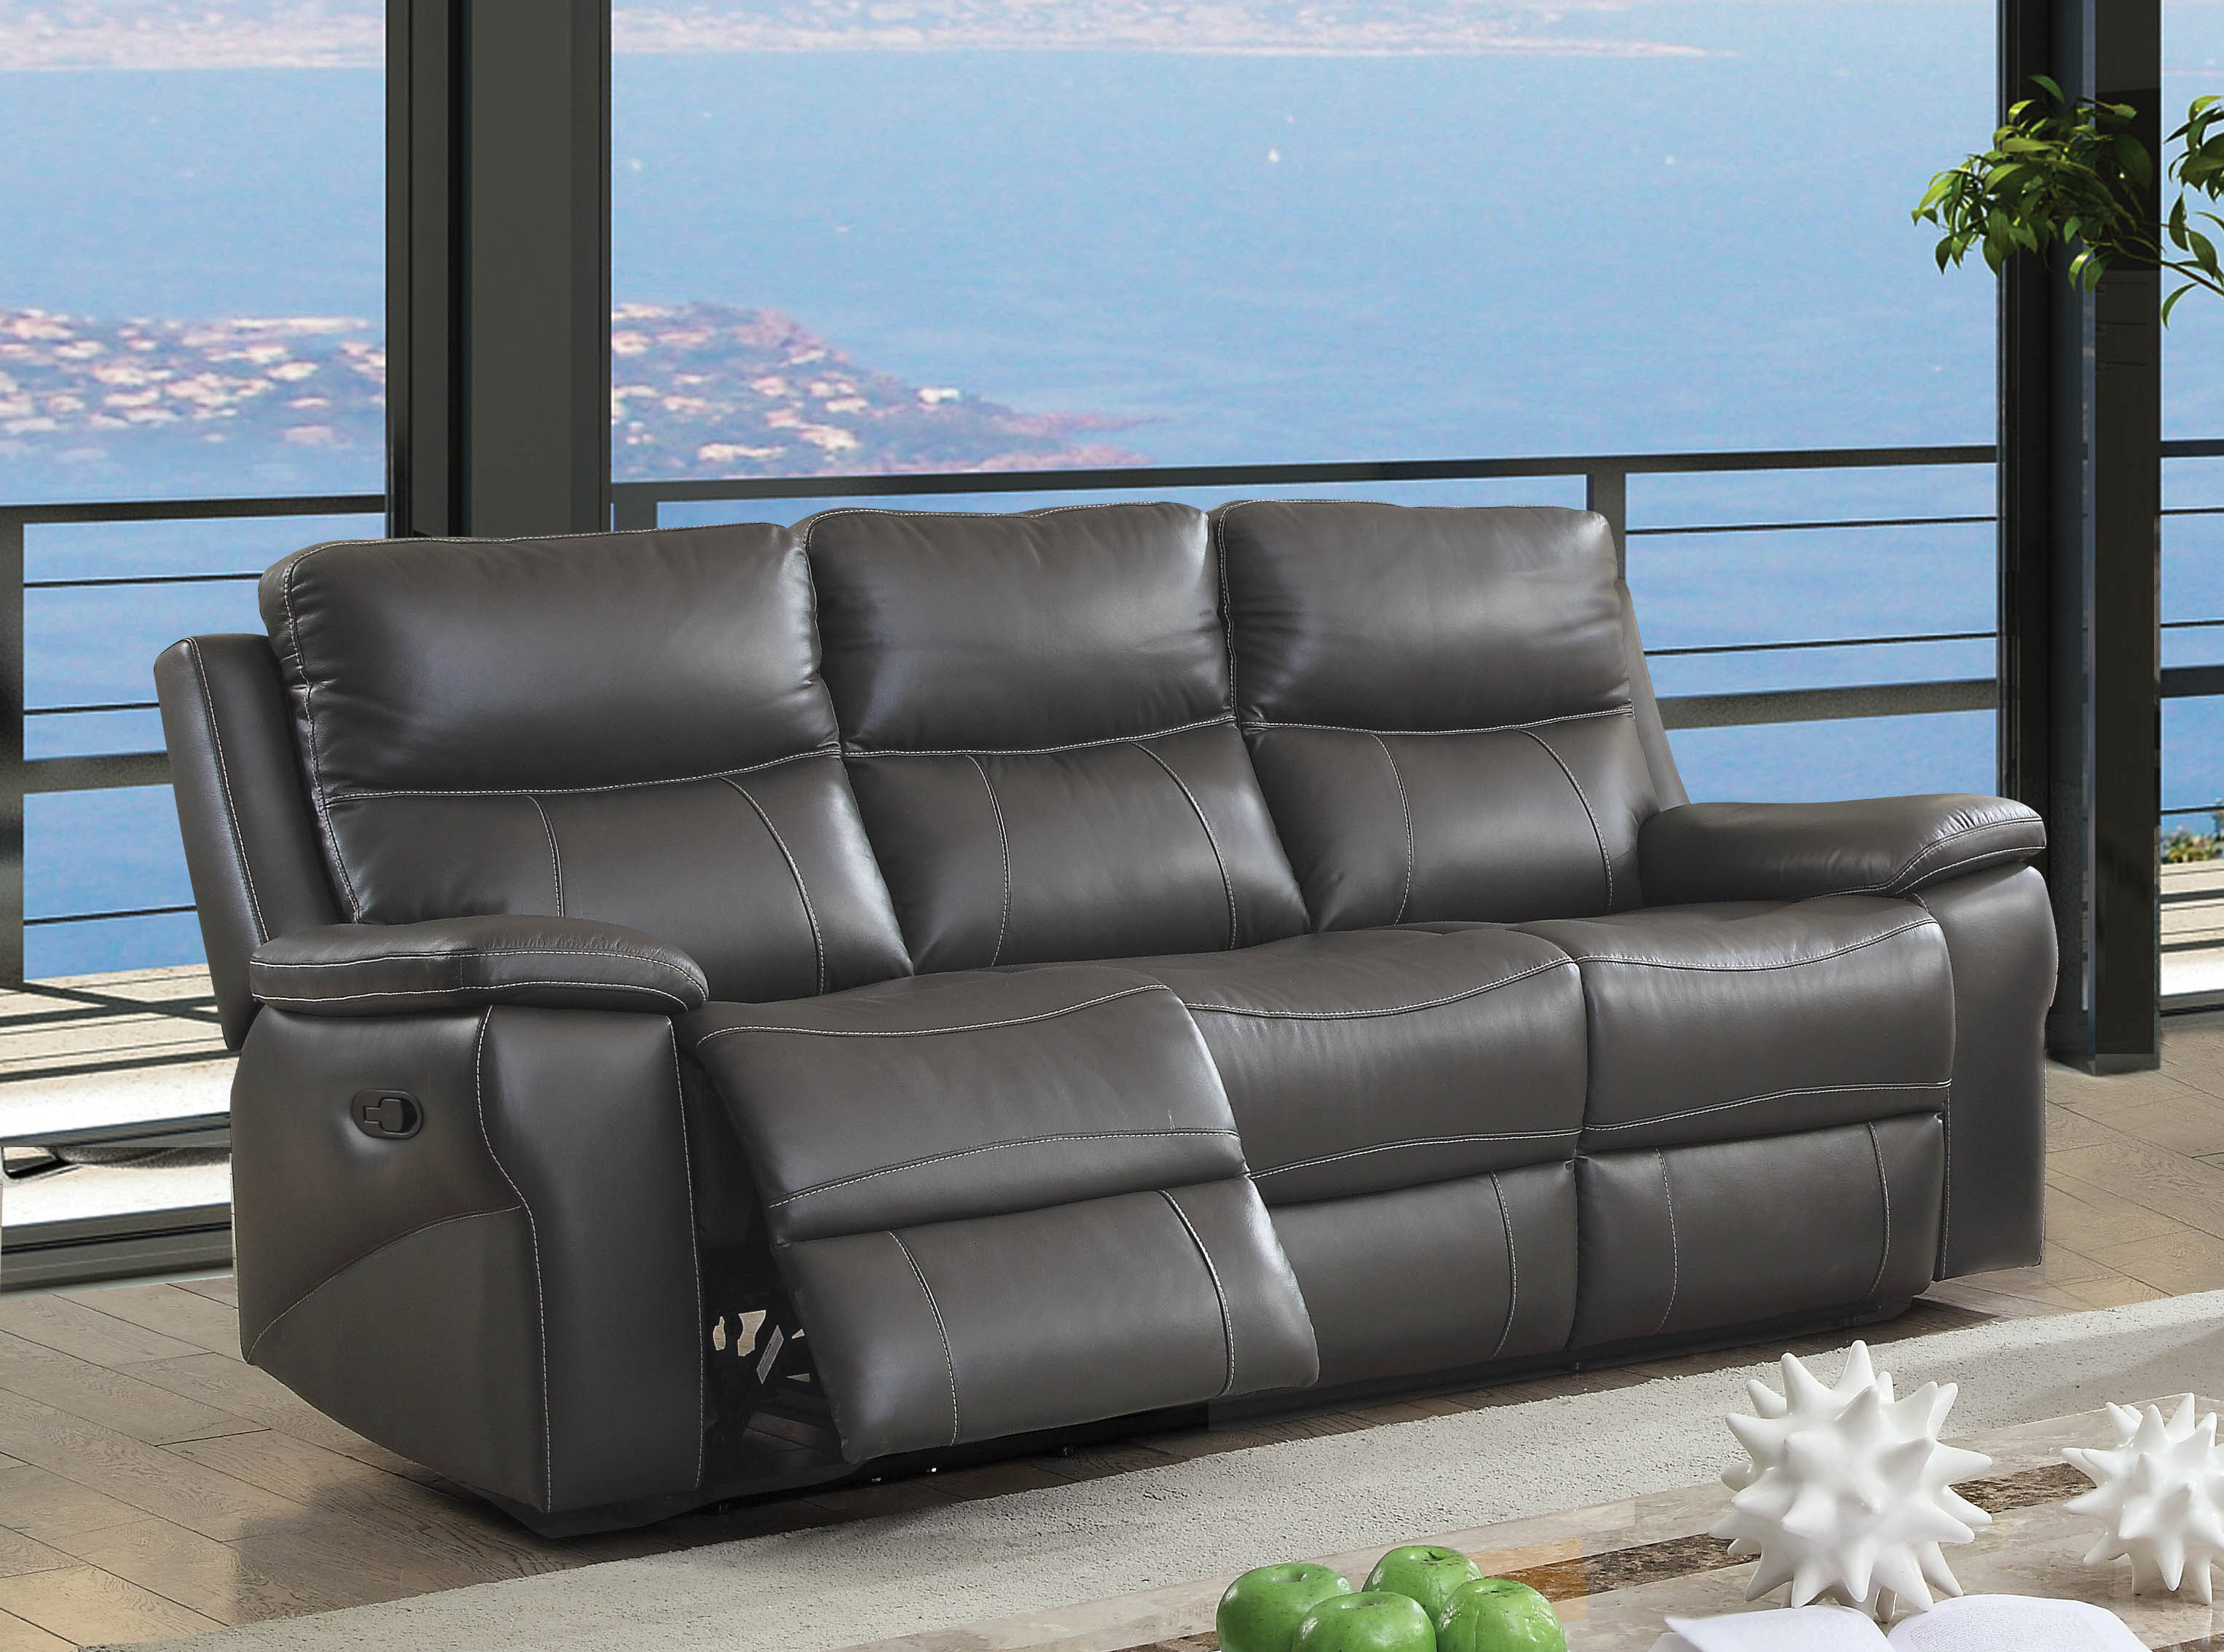 Furniture of America Michael Contemporary Leather Recliner Sofa ...